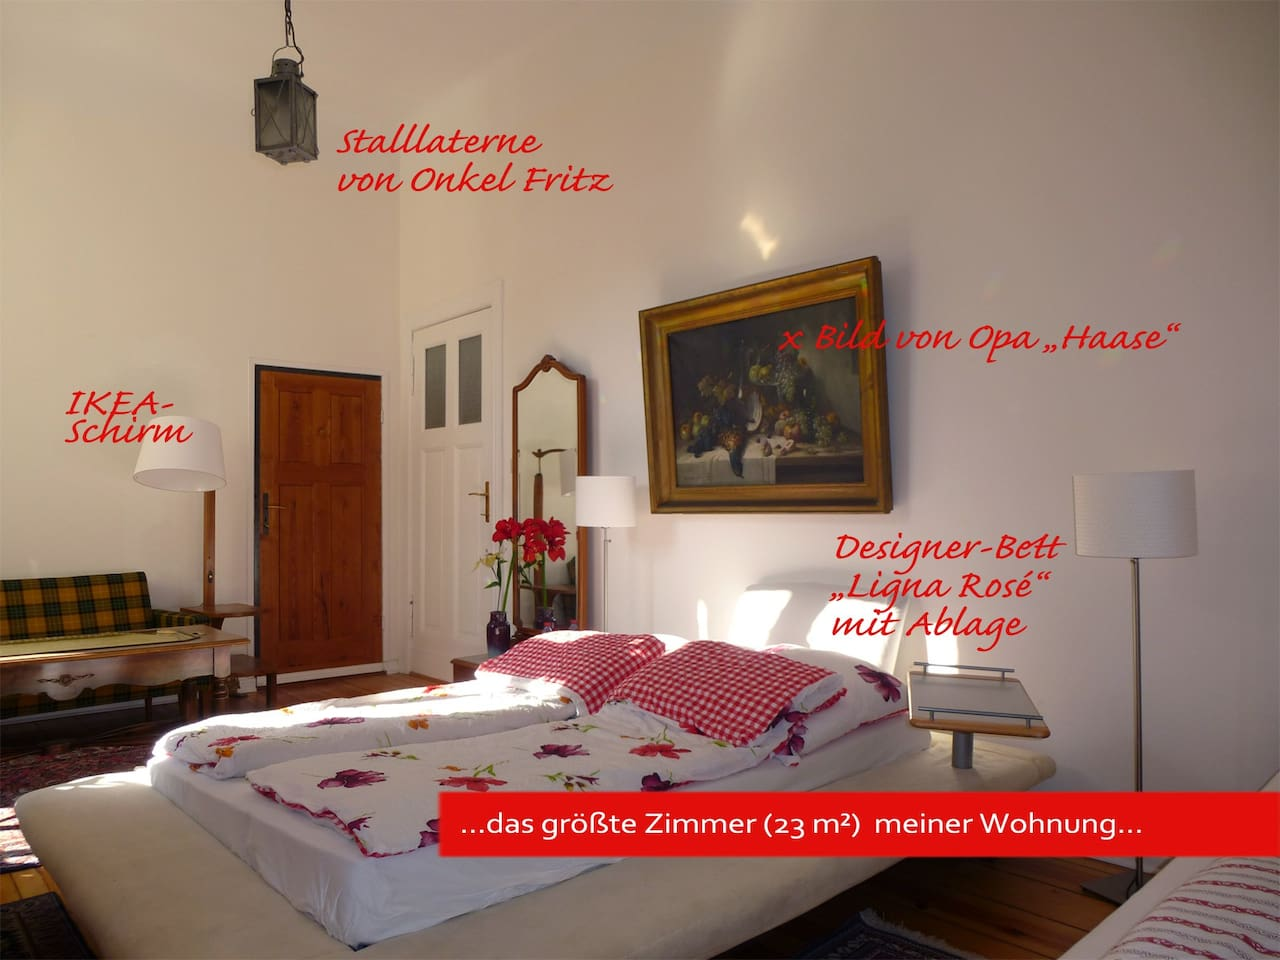 ..the largest room (23 m²) in my own apartment ...